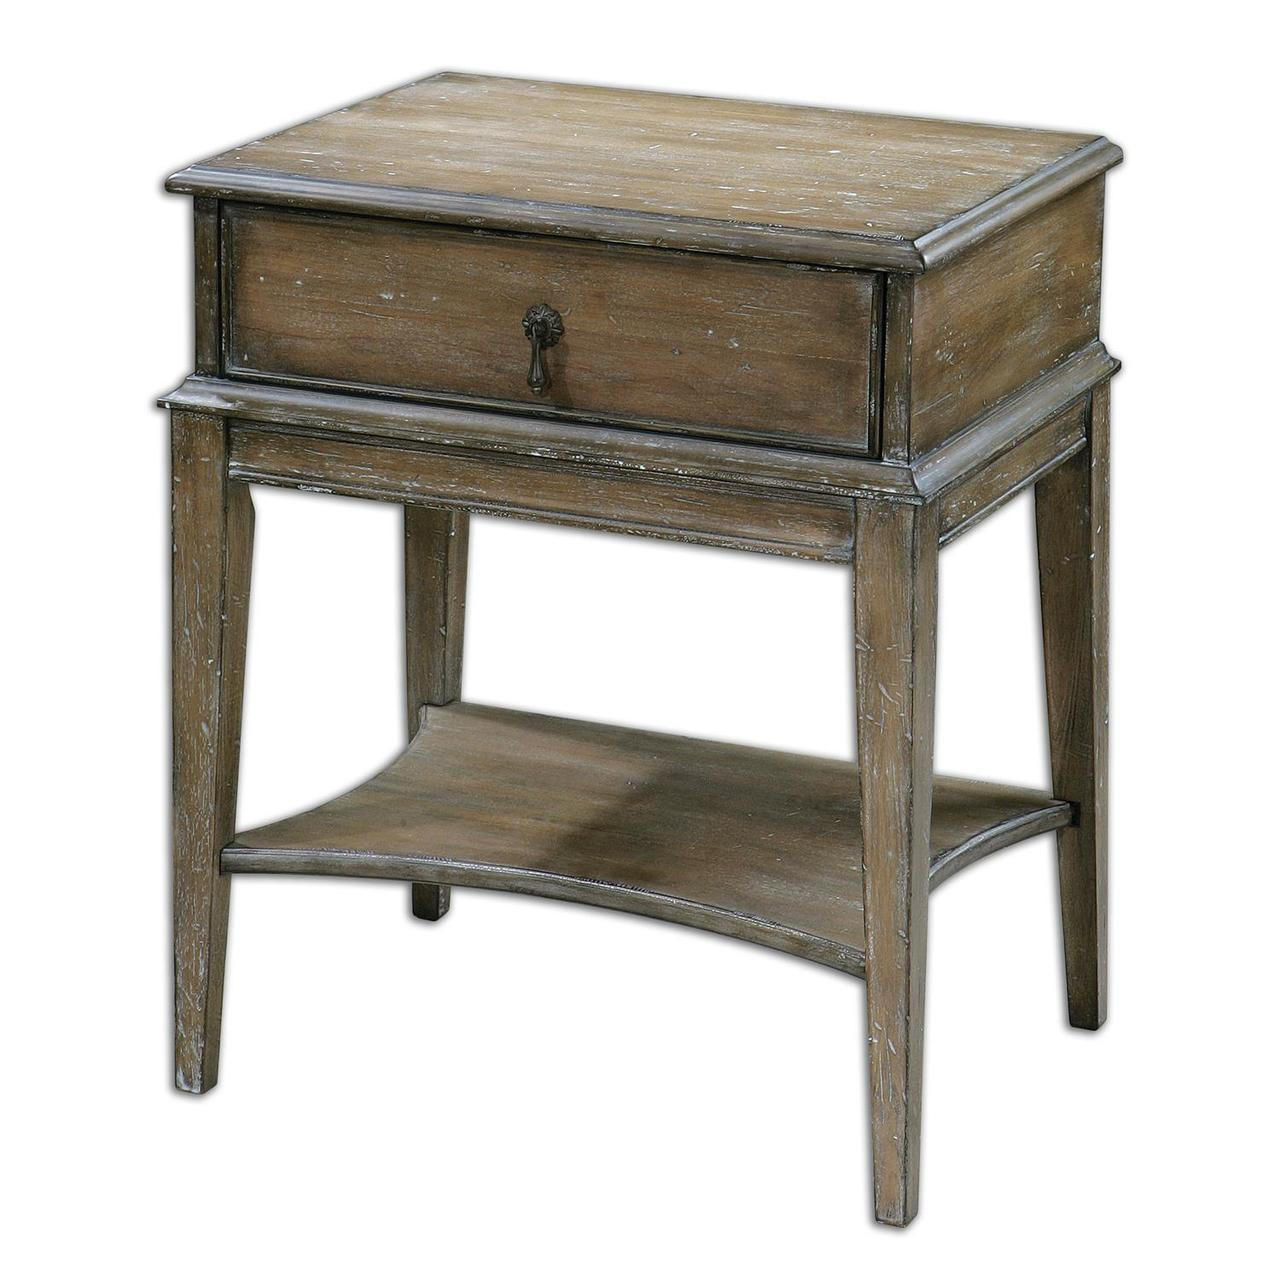 krause antiqued weathered pine wood accent side table sofa couch covers target outdoor furniture ideas diy basket coffee trestle dining unique tables living room mid century